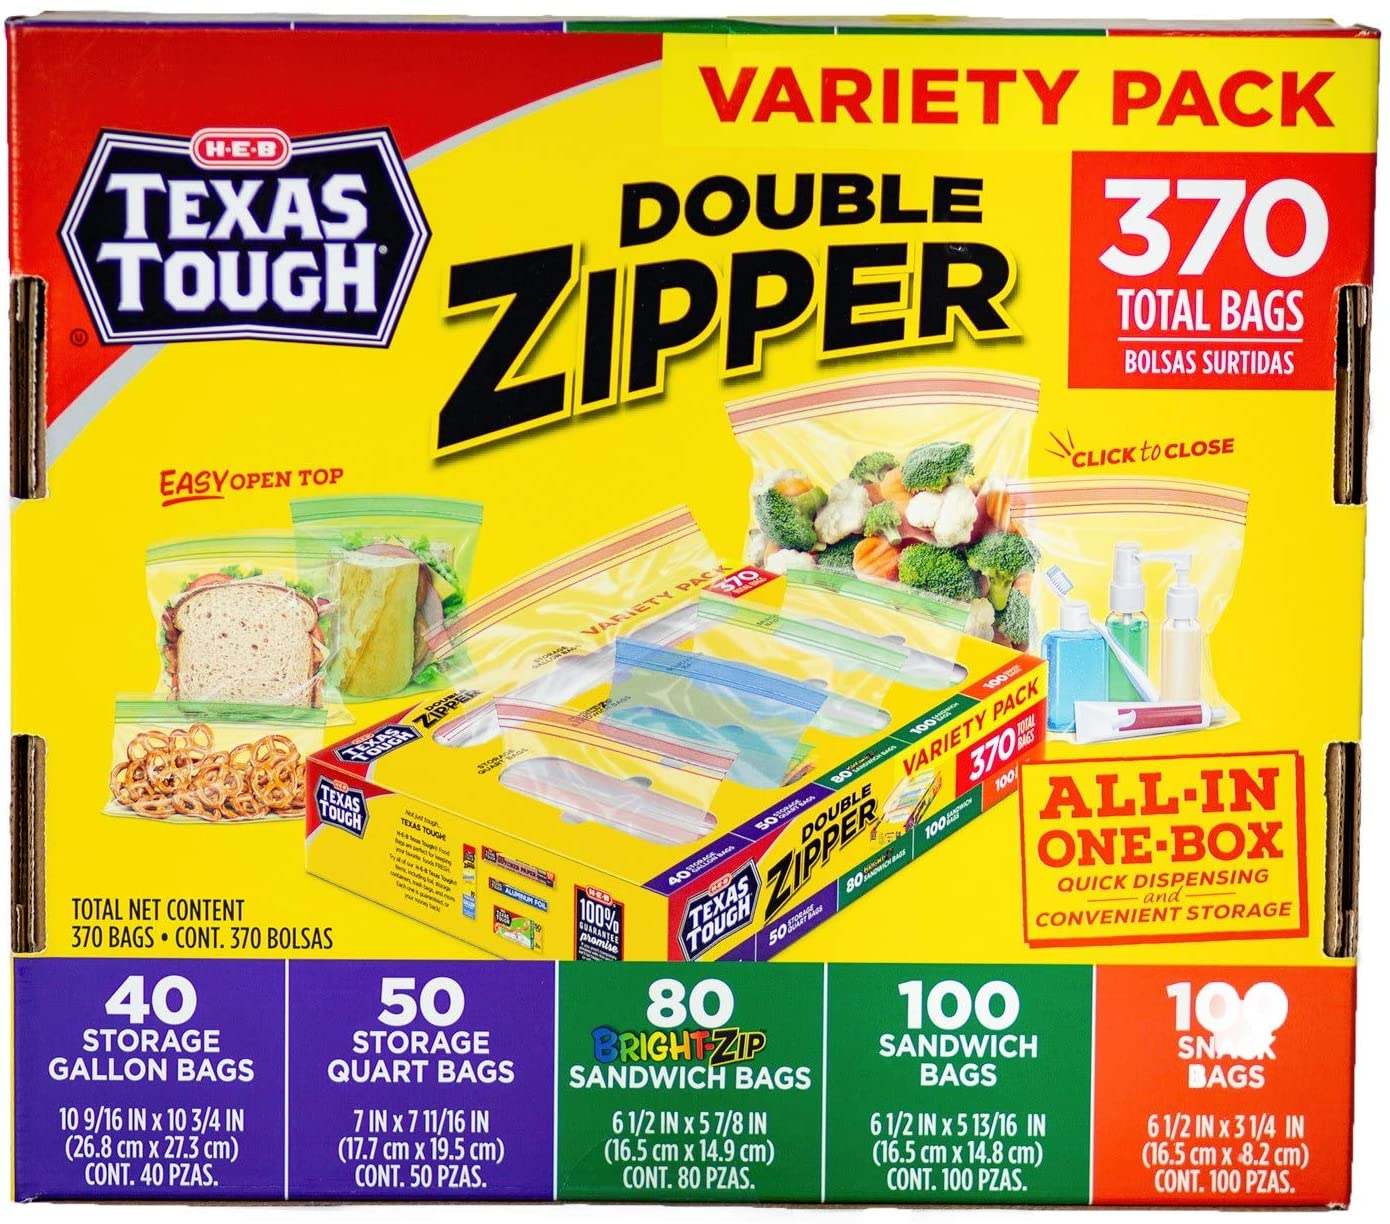 Texas Tough All-In-One Box 370 total bags